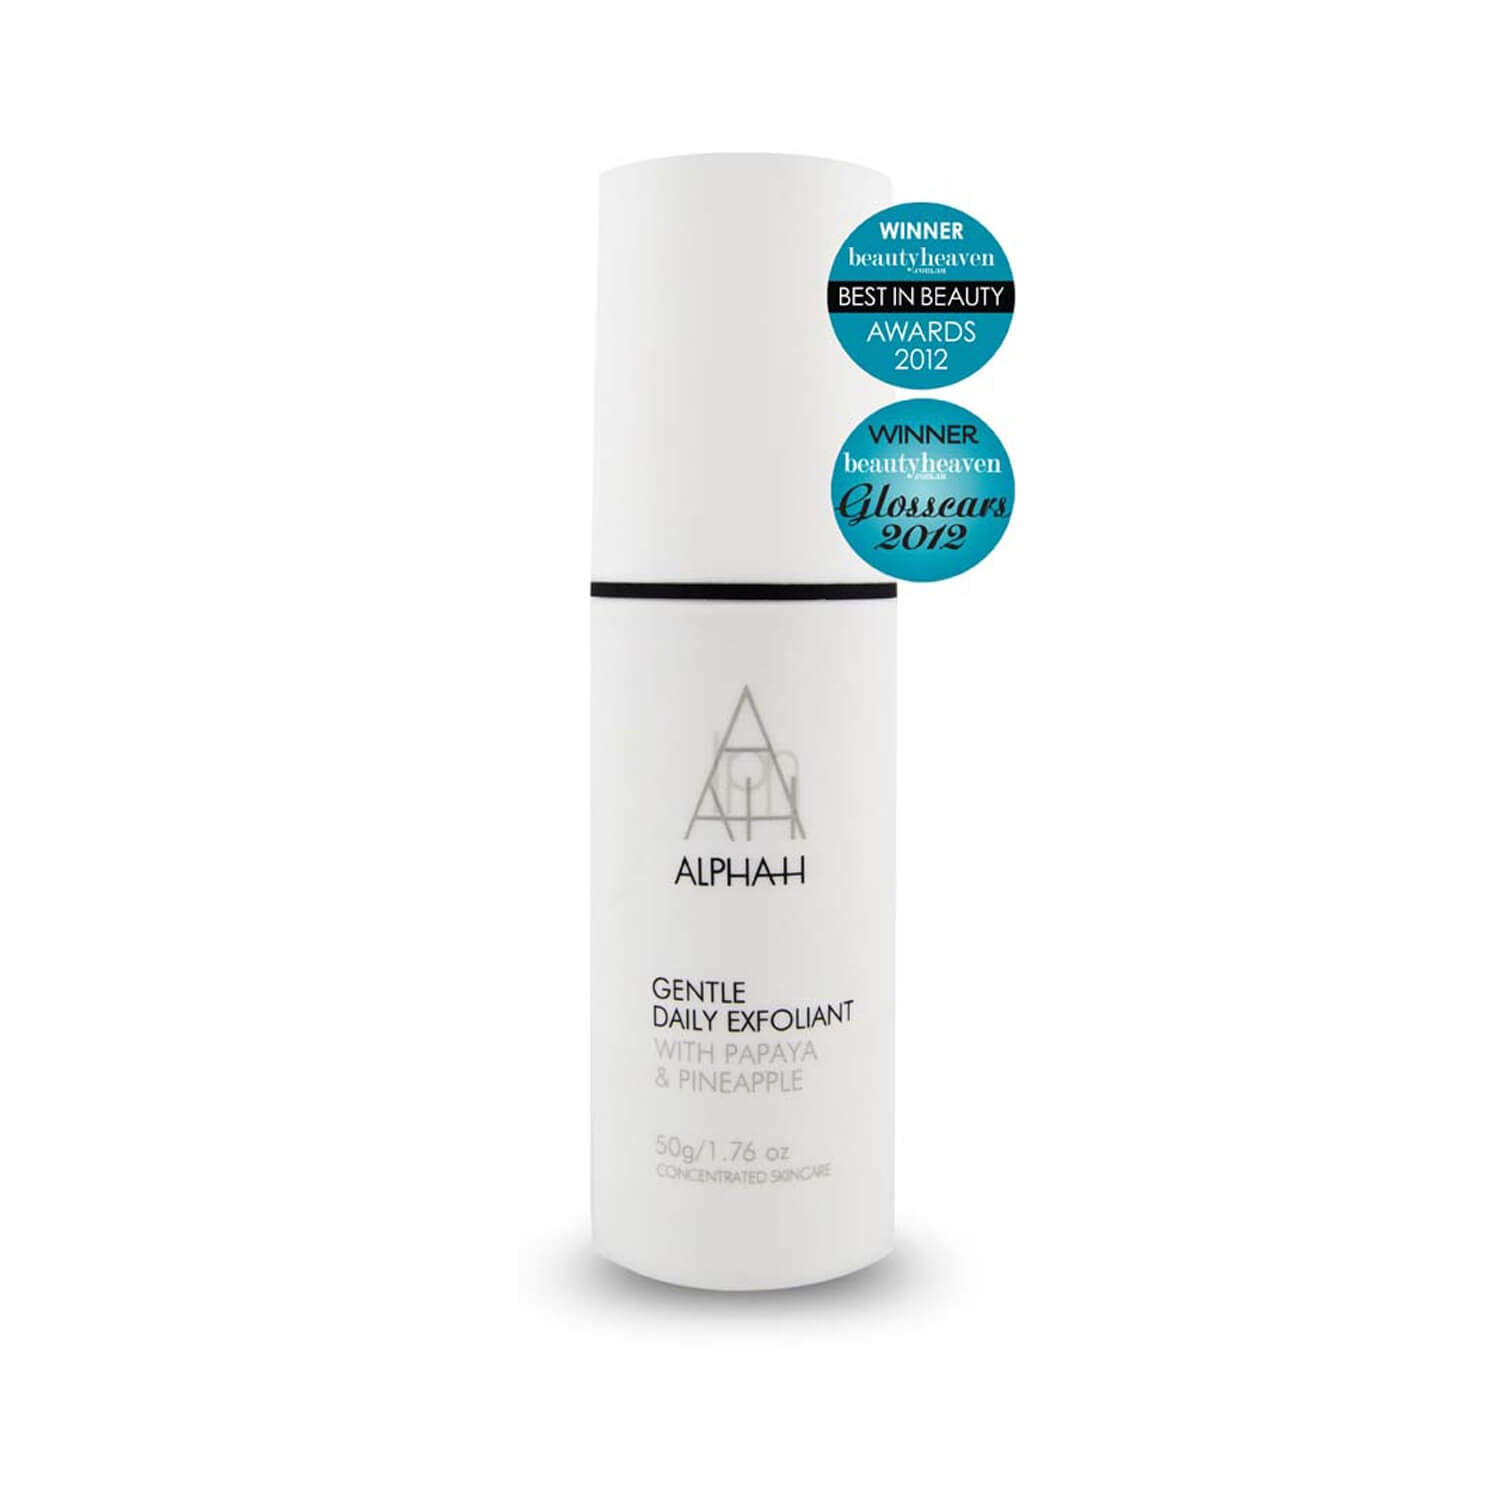 Gentle Daily Exfoliant - 50g